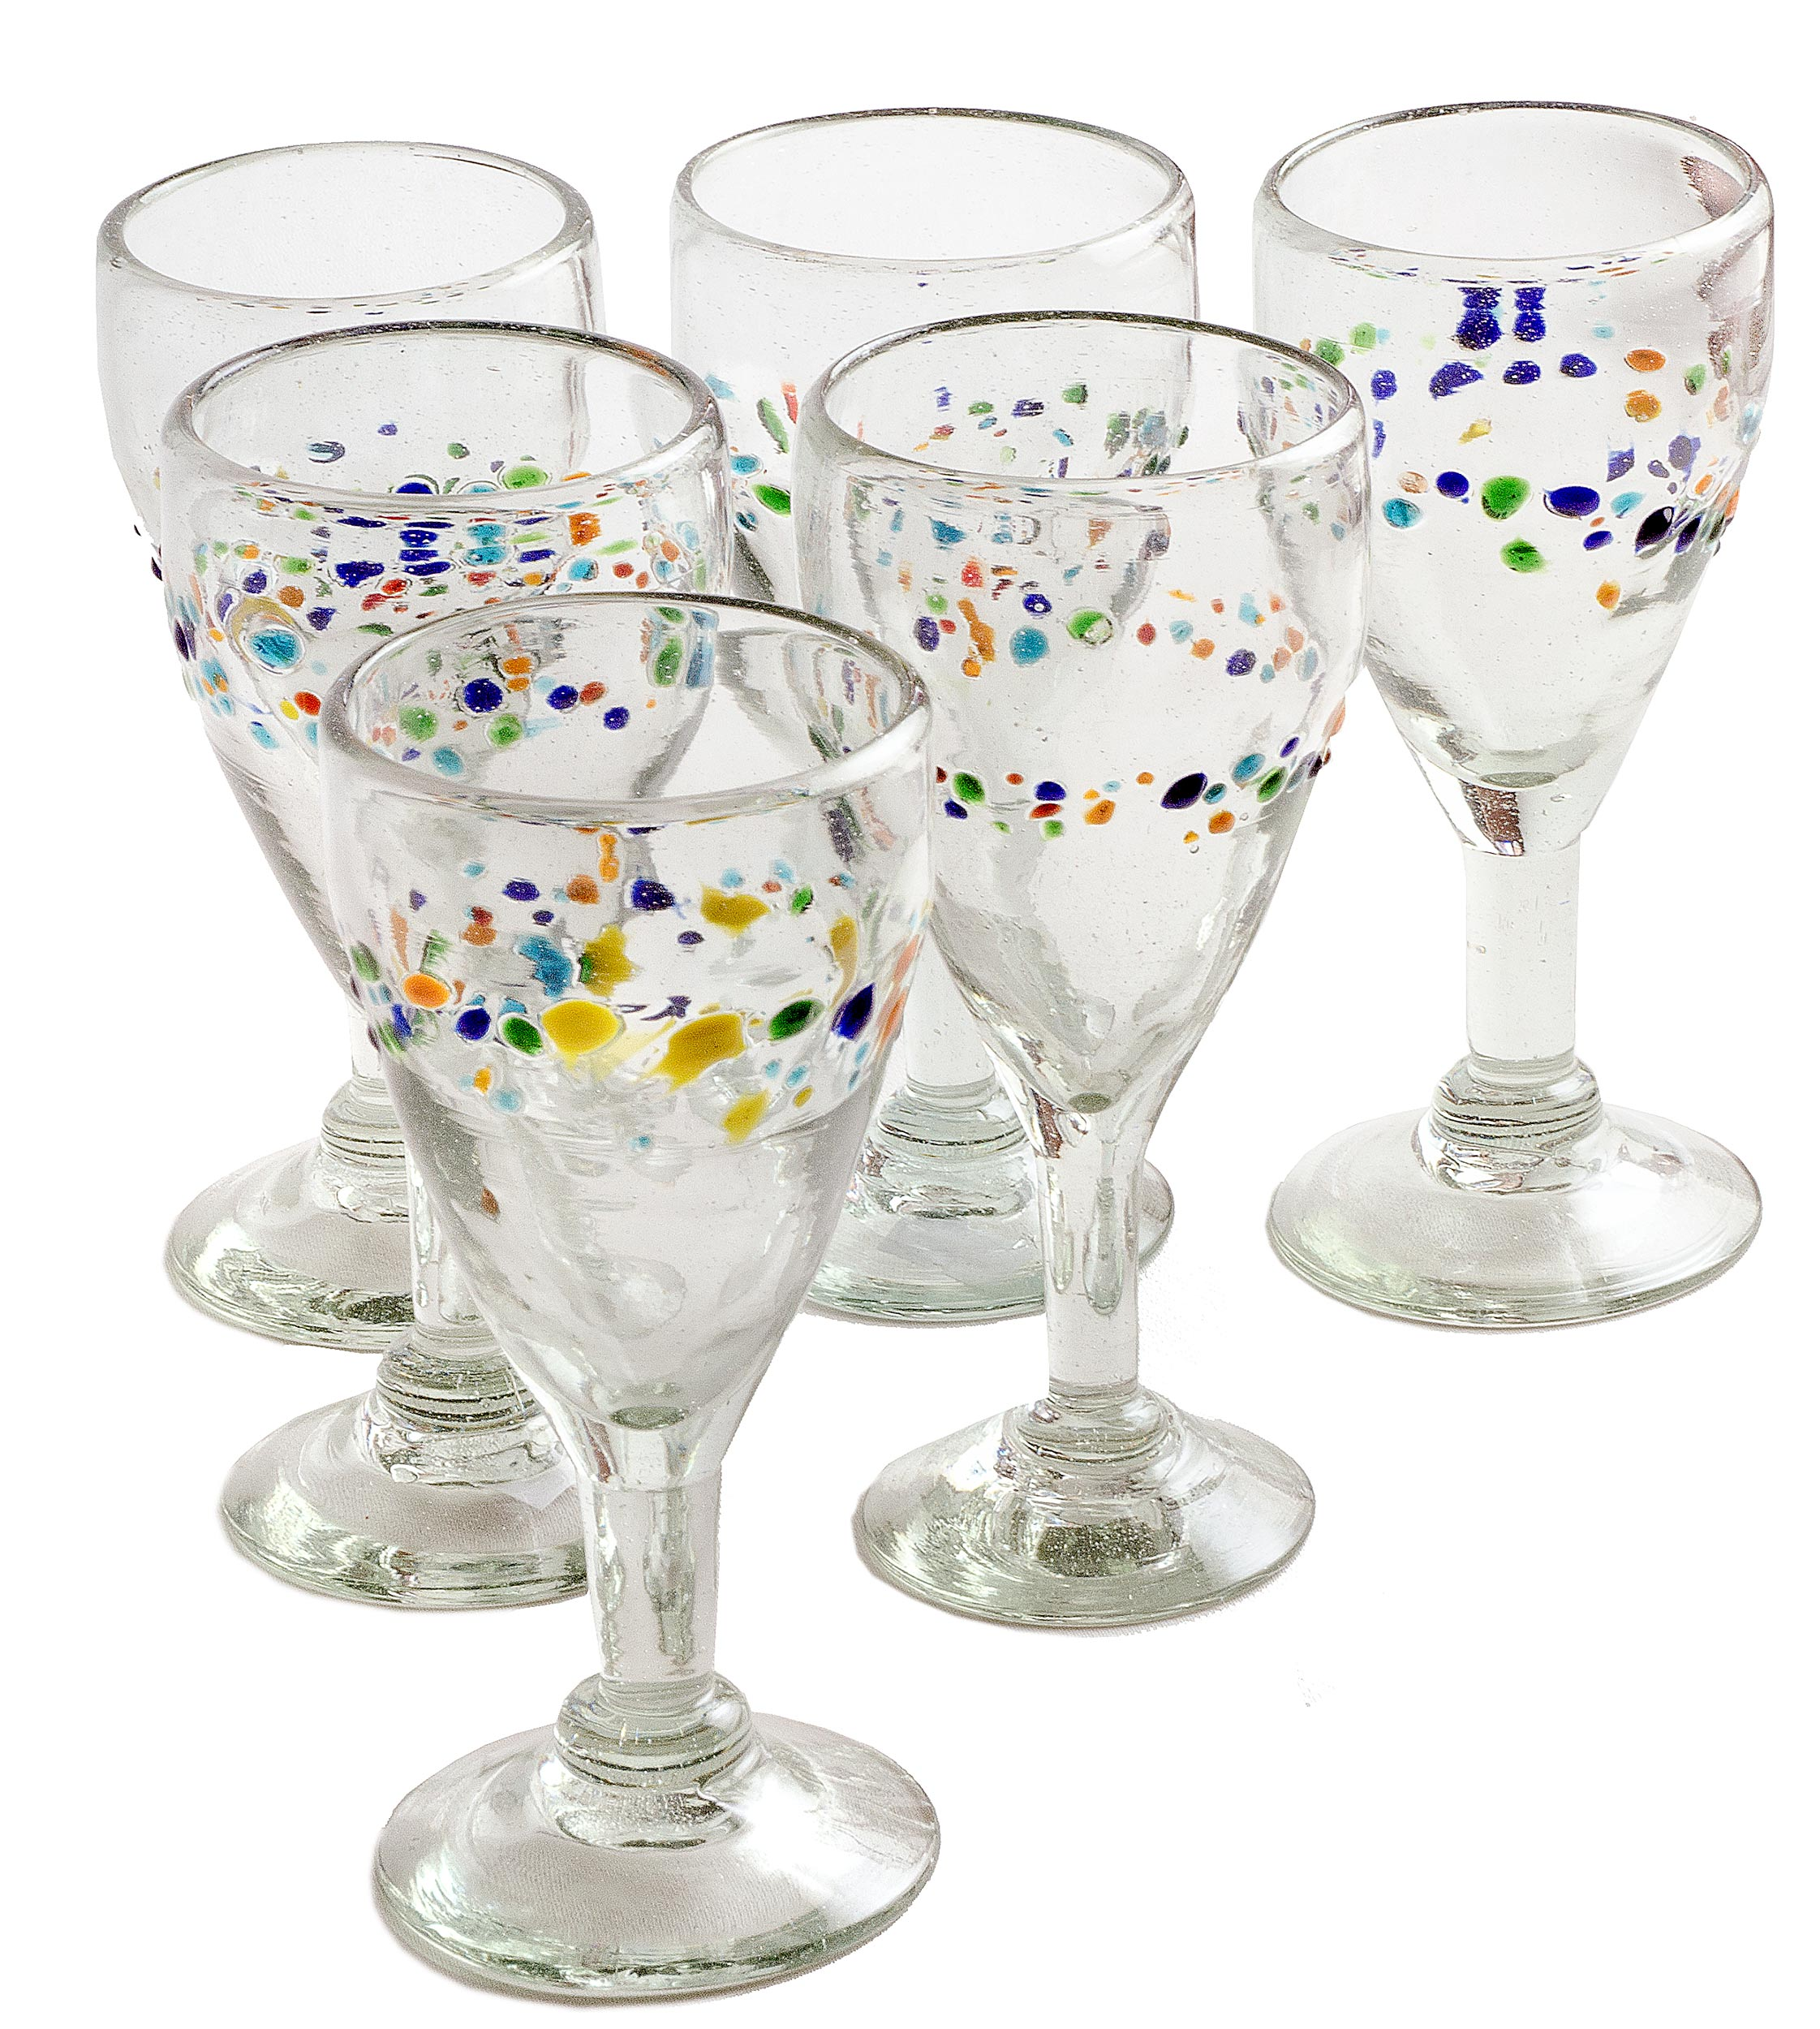 Orion Tutti Frutti 9 oz Copa Vino - Orion's Table Mexican Glassware